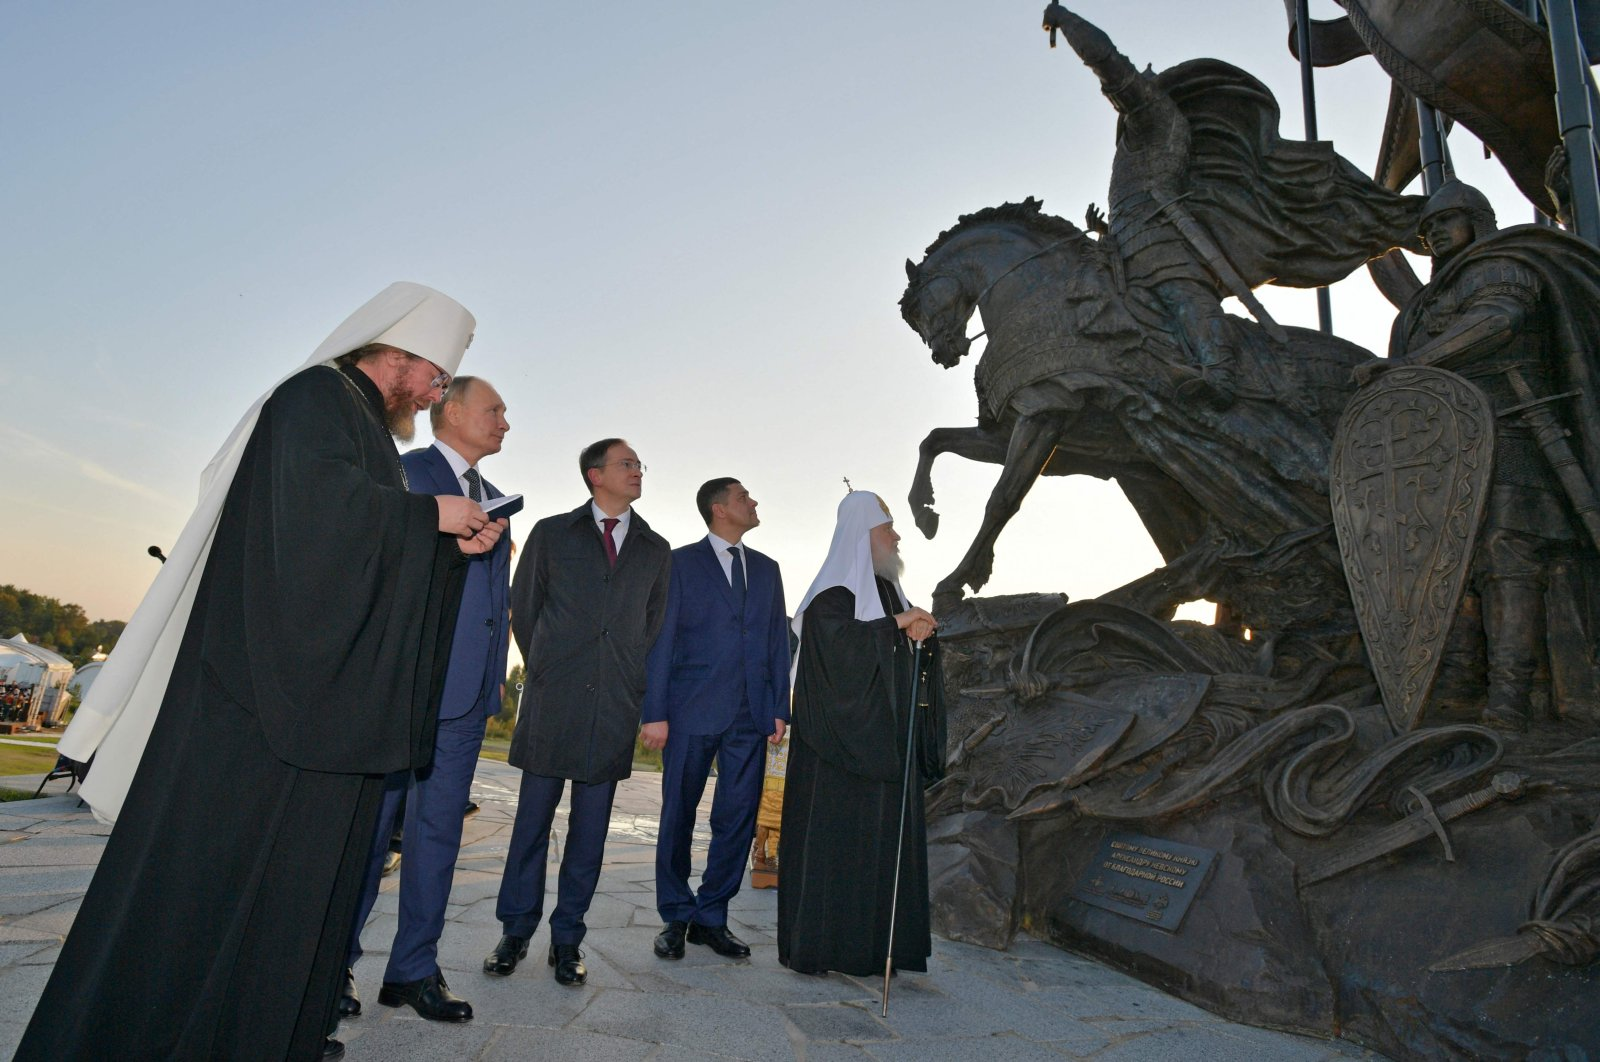 Russian President Vladimir Putin (2nd L) participates in a ceremony to unveil a huge monument of legendary Russian medieval prince Alexander Nevsky in the village of Samolva, outside Pskov, Sept. 11. 2021. (AFP Photo)